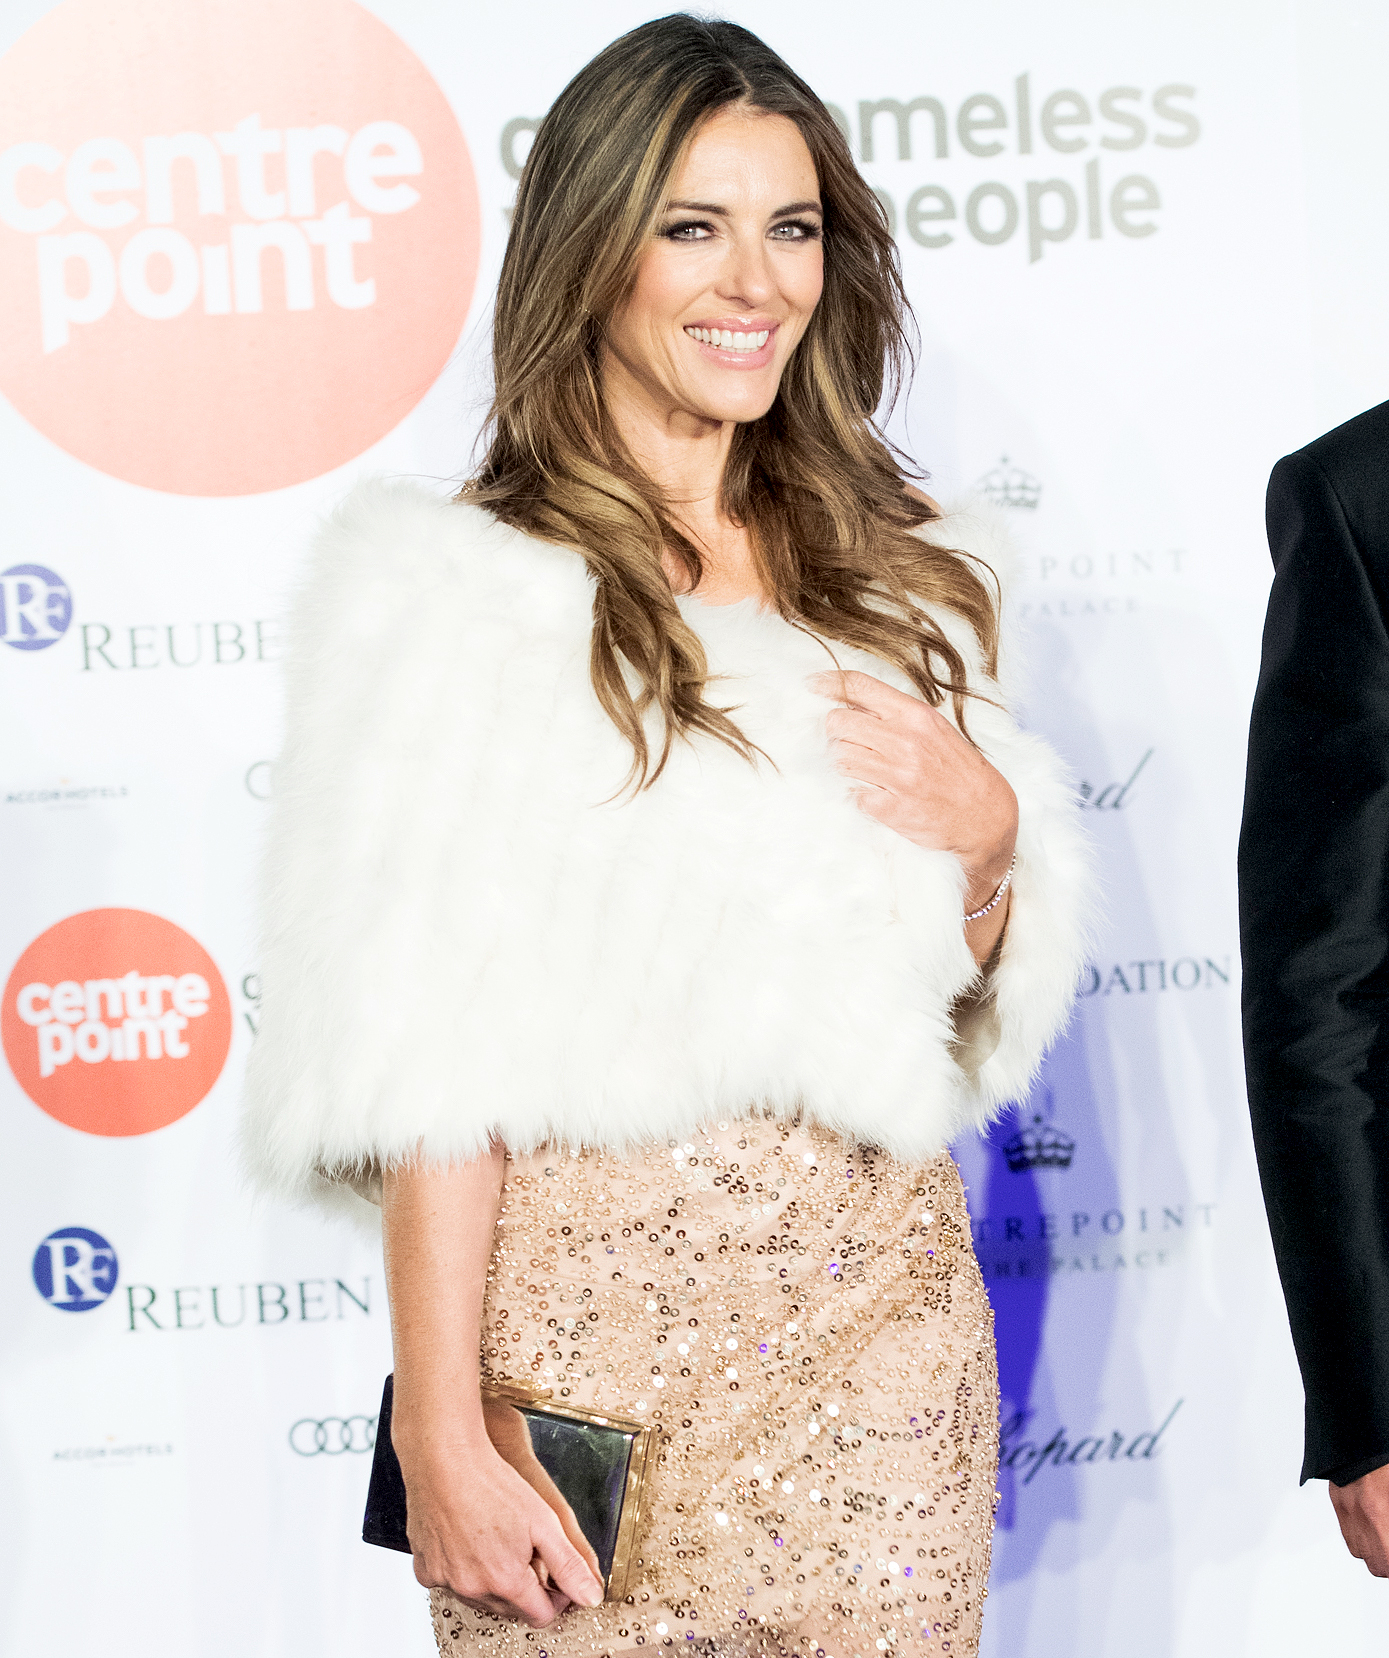 Elizabeth Hurley attends Centrepoint At The Palace at Kensington Palace on November 10, 2016 in London, England.